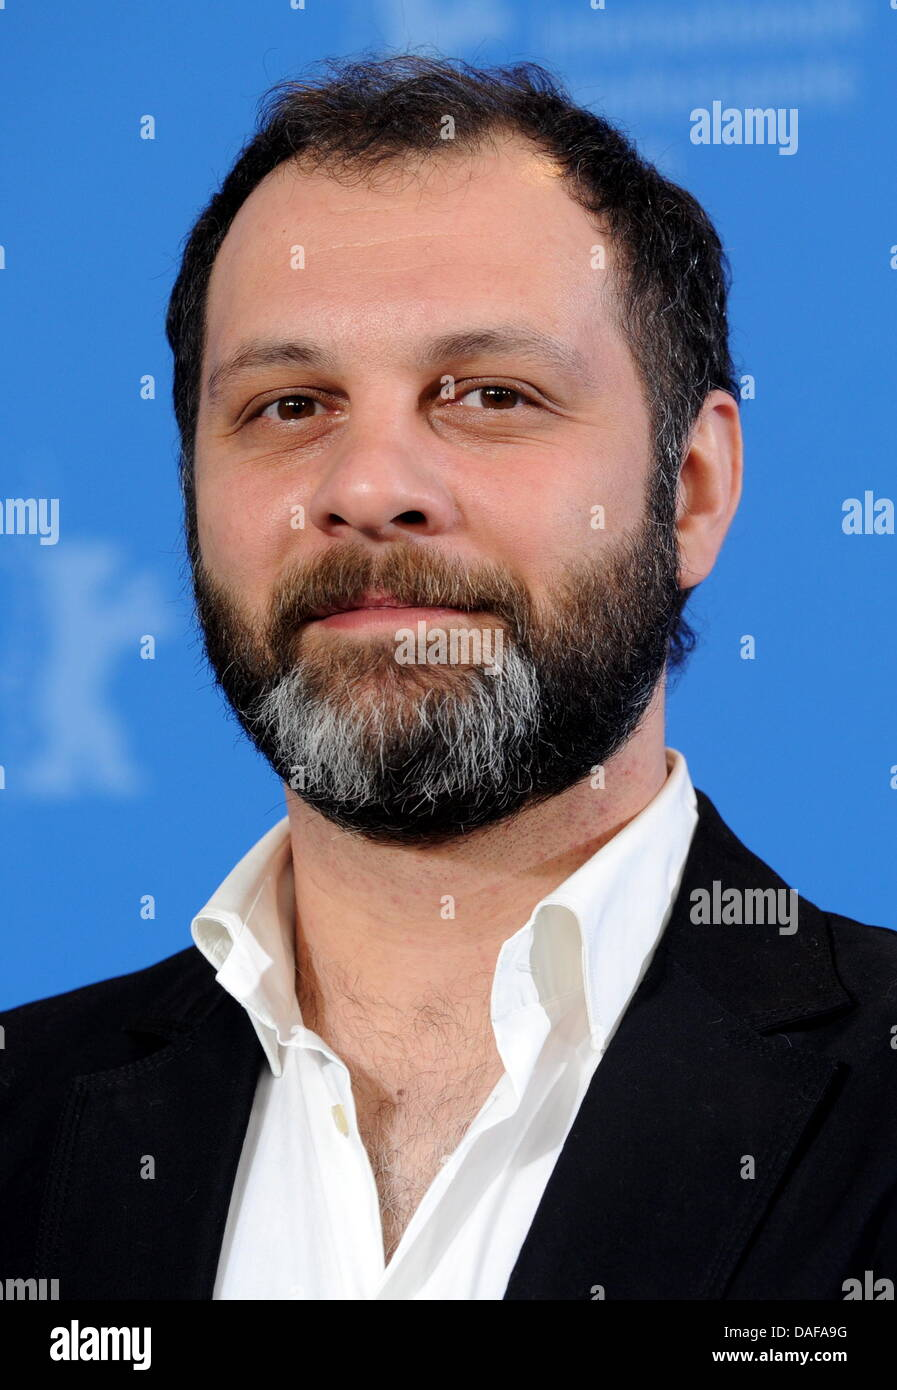 Actor Fatih Al poses during the photocall for the film 'Our Grand Stock  Photo - Alamy